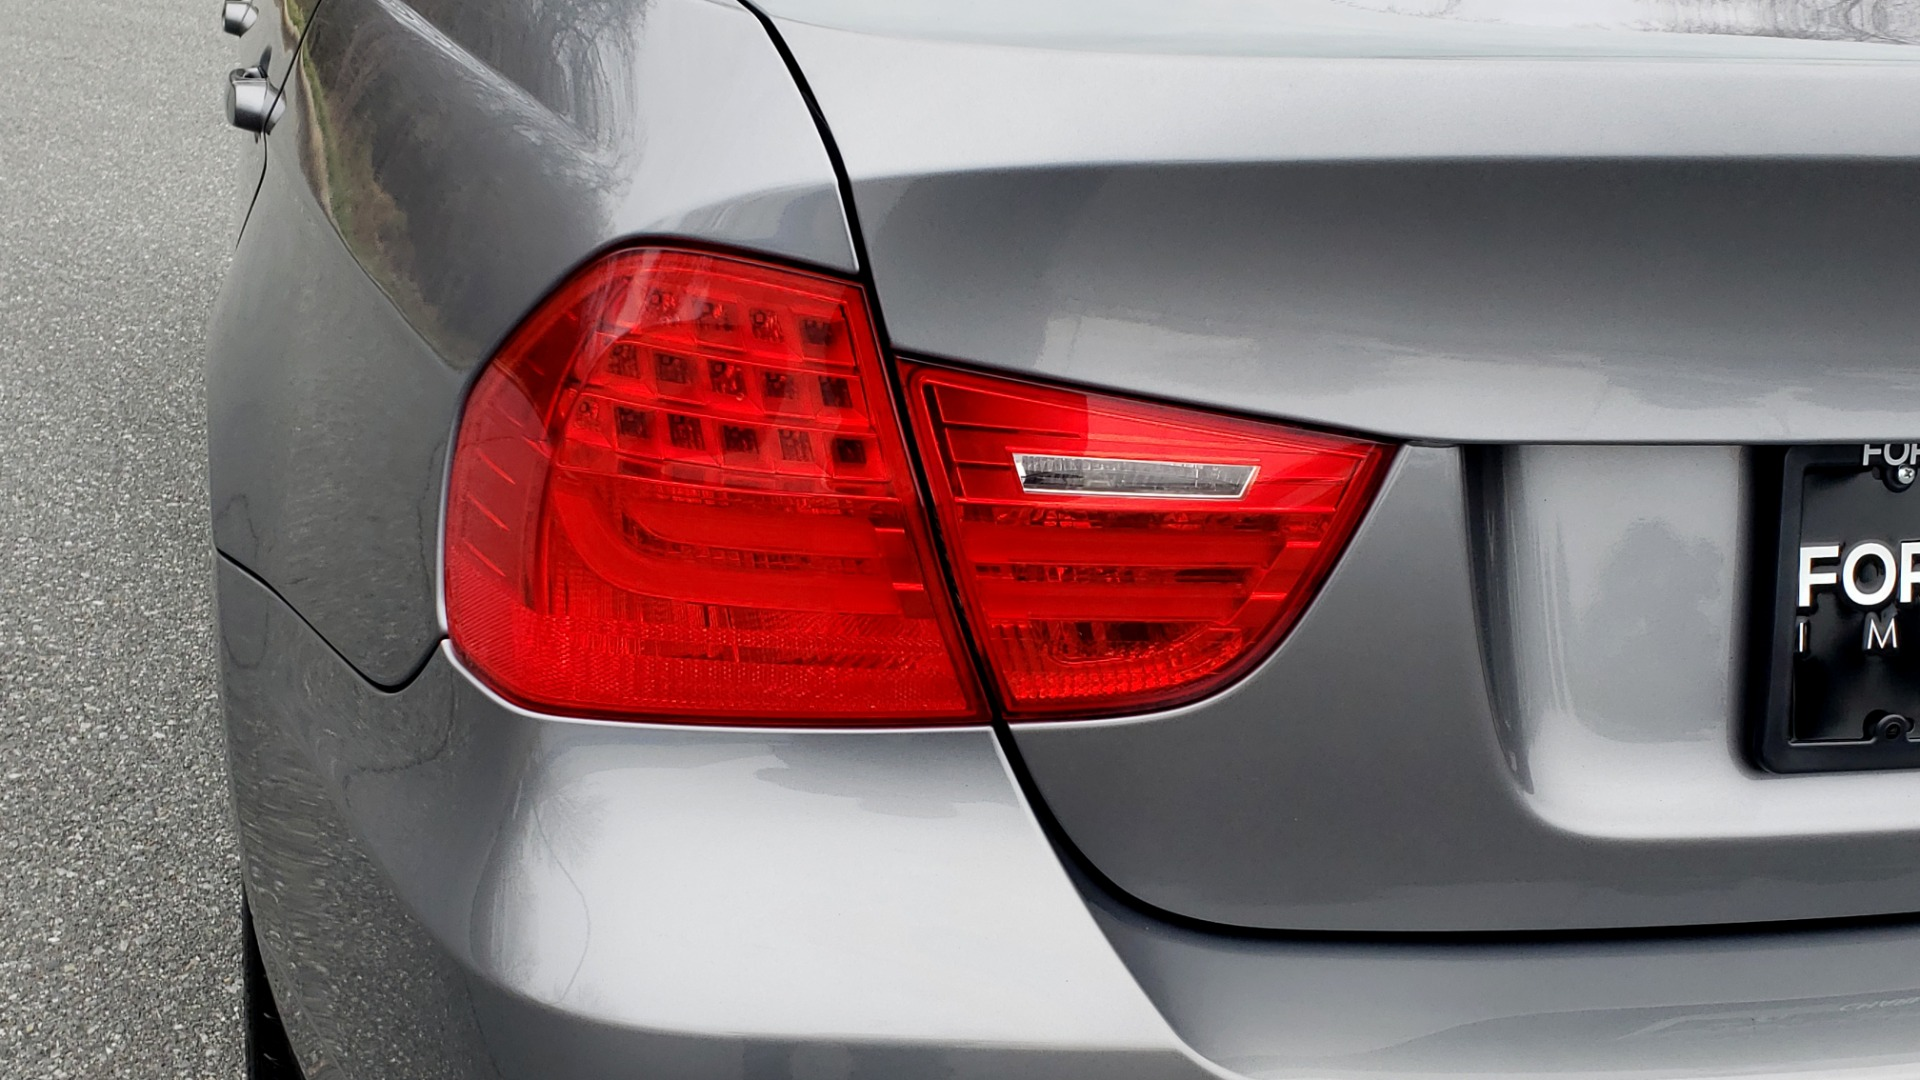 Used 2011 BMW 3 SERIES 328IXDRIVE PREMIUM / NAV / SUNROOF / HEATED SEATS for sale Sold at Formula Imports in Charlotte NC 28227 25